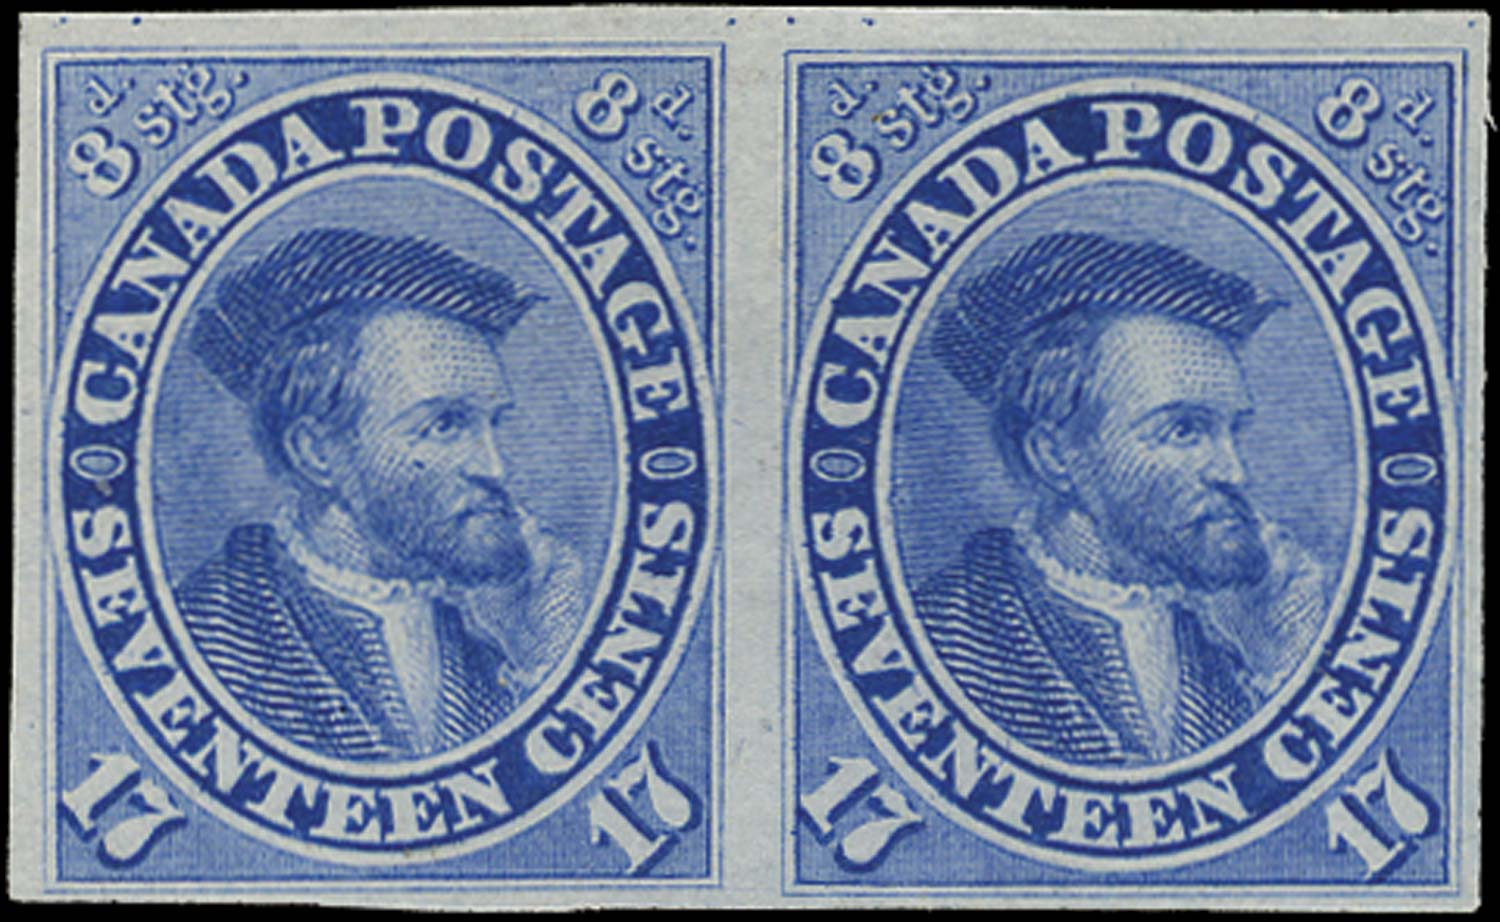 CANADA 1859  SG42 Proof 17c Jacques Cartier in pale blue